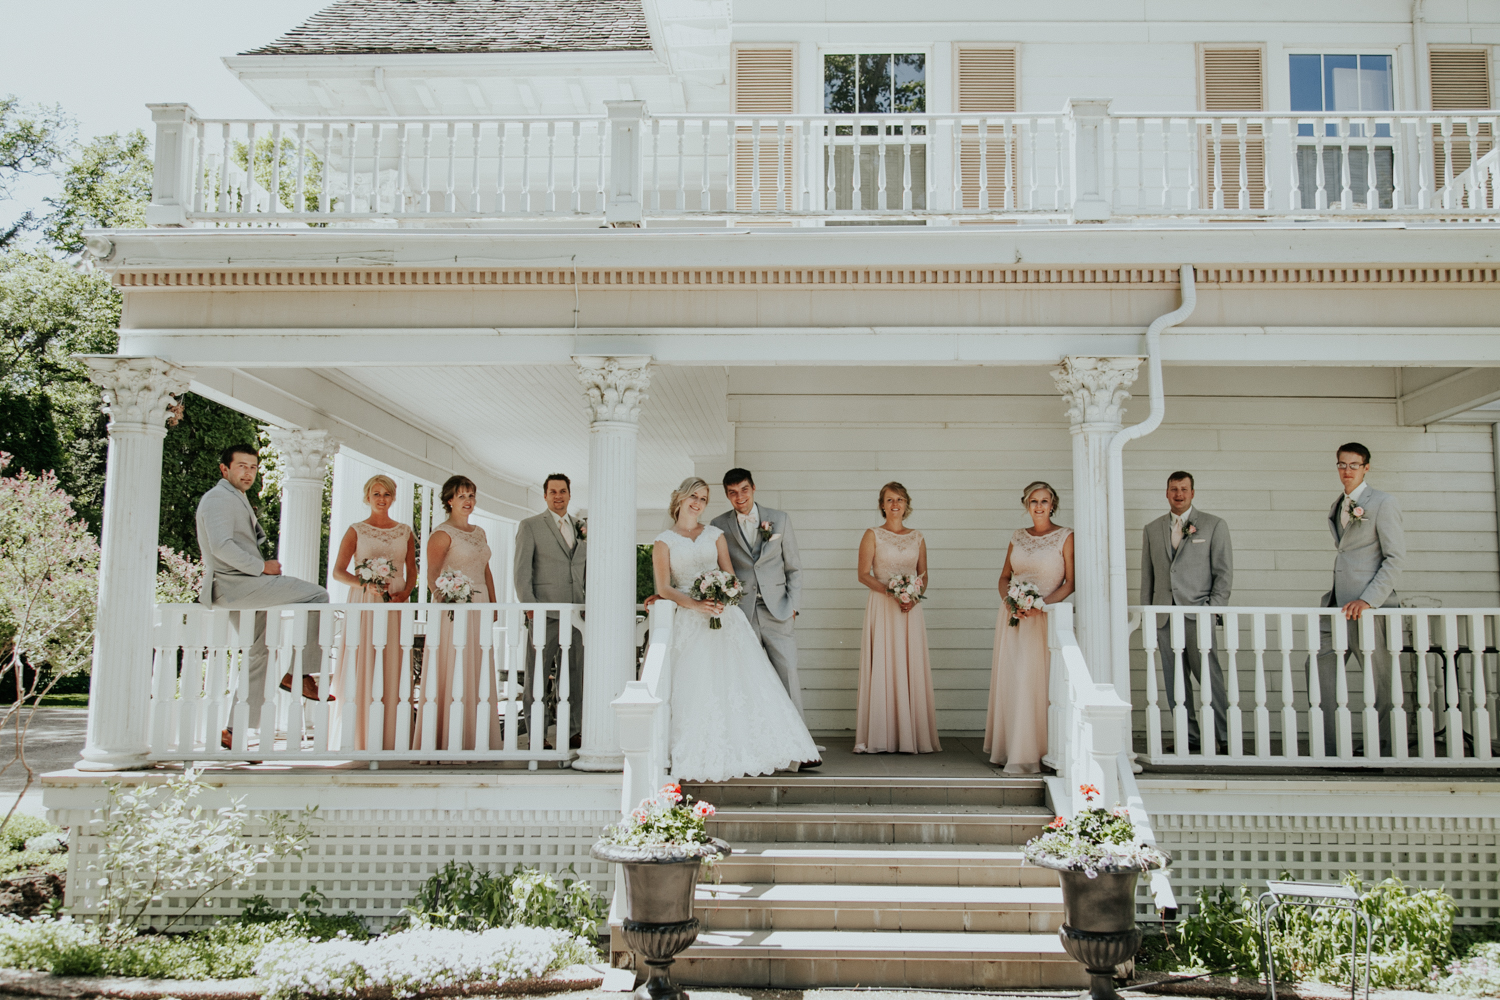 norland-estate-wedding-lethbridge-photography-love-and-be-loved-photographer-picture-image-photo-10.jpg